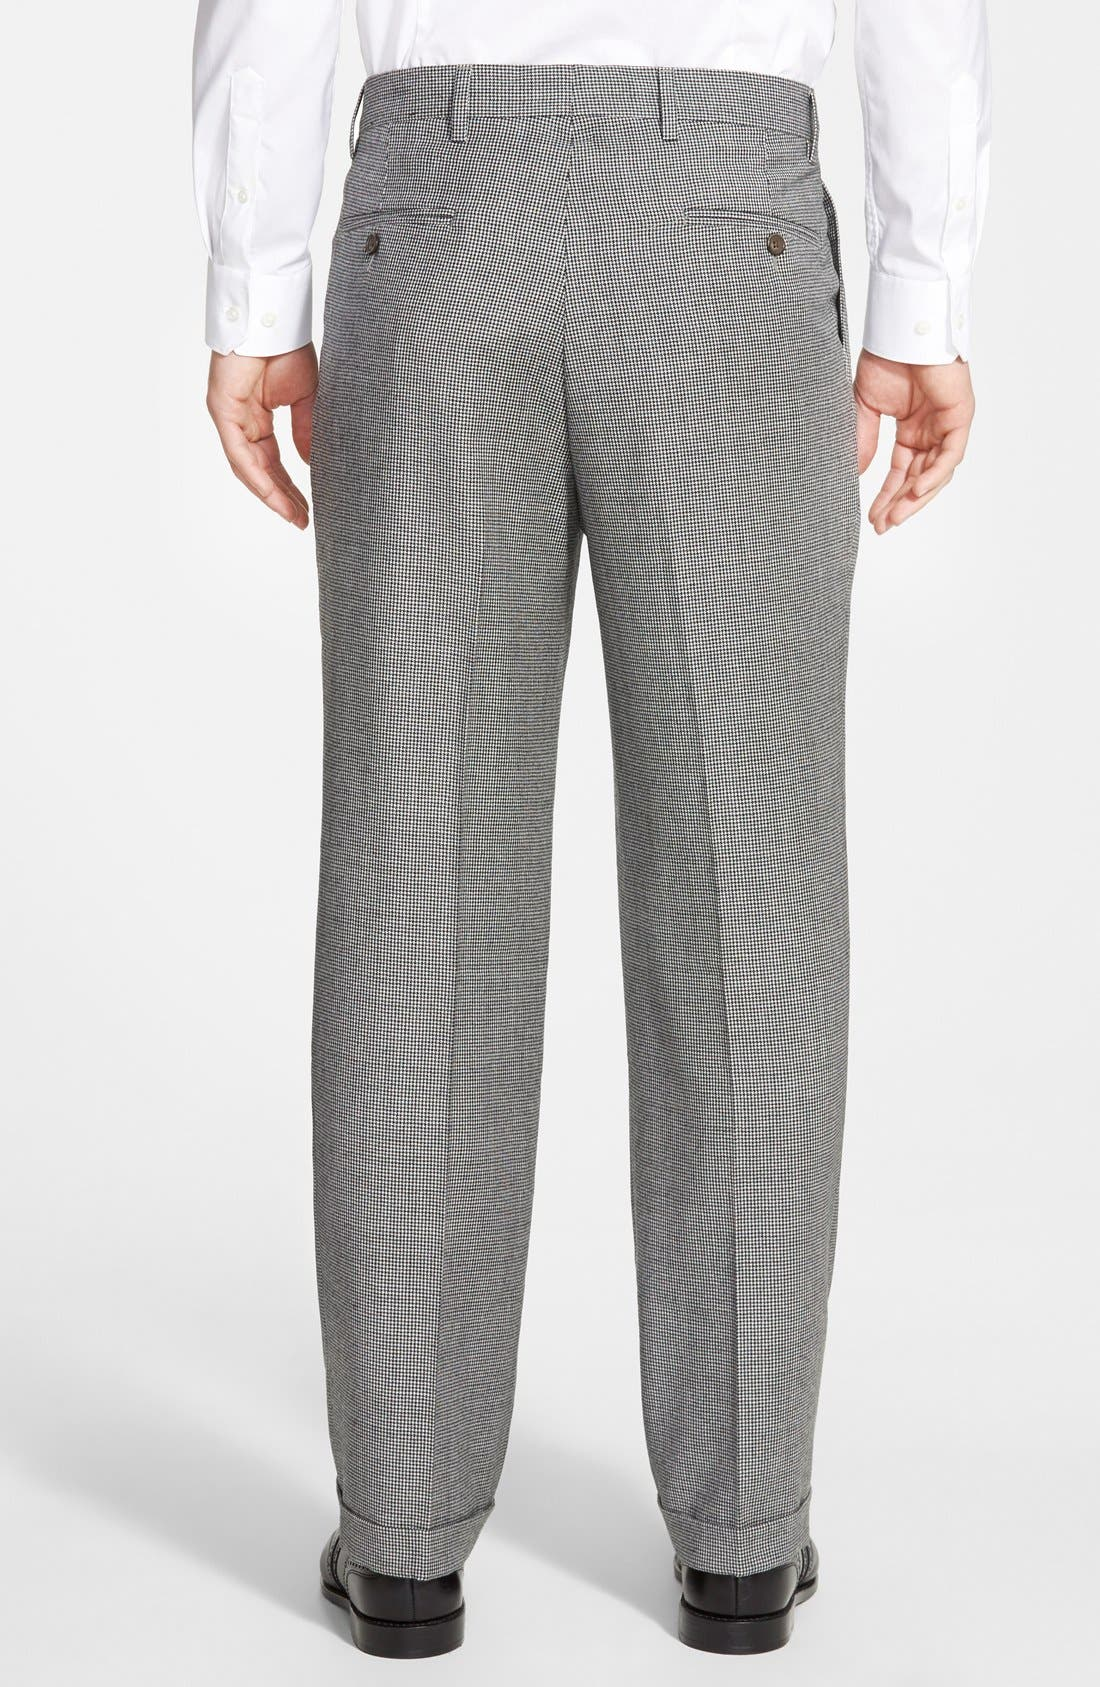 Pleated Houndstooth Wool Trousers,                             Alternate thumbnail 3, color,                             Charcoal